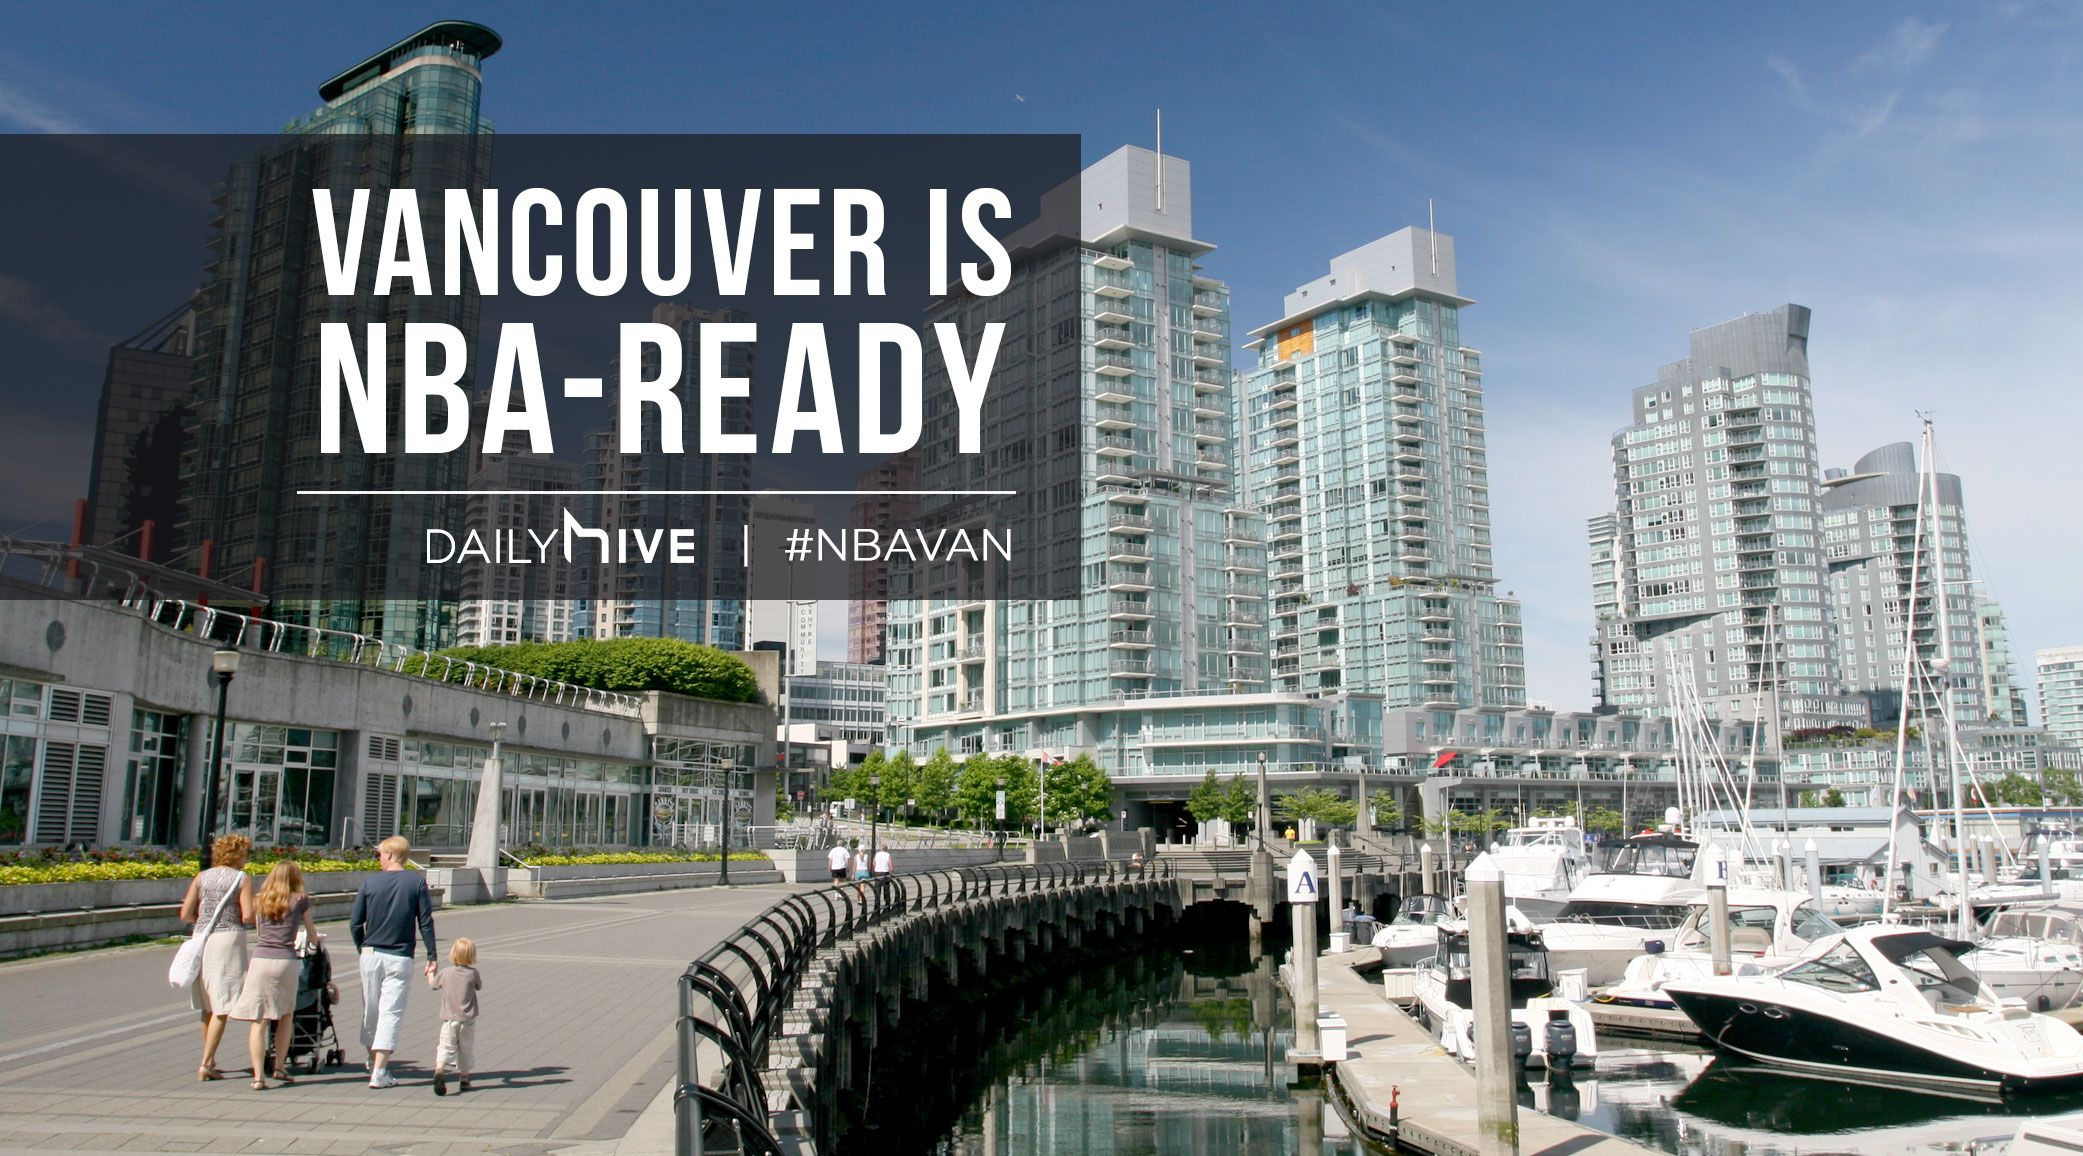 Vancouver is NBA-ready (Part 3): Economy can support another major franchise